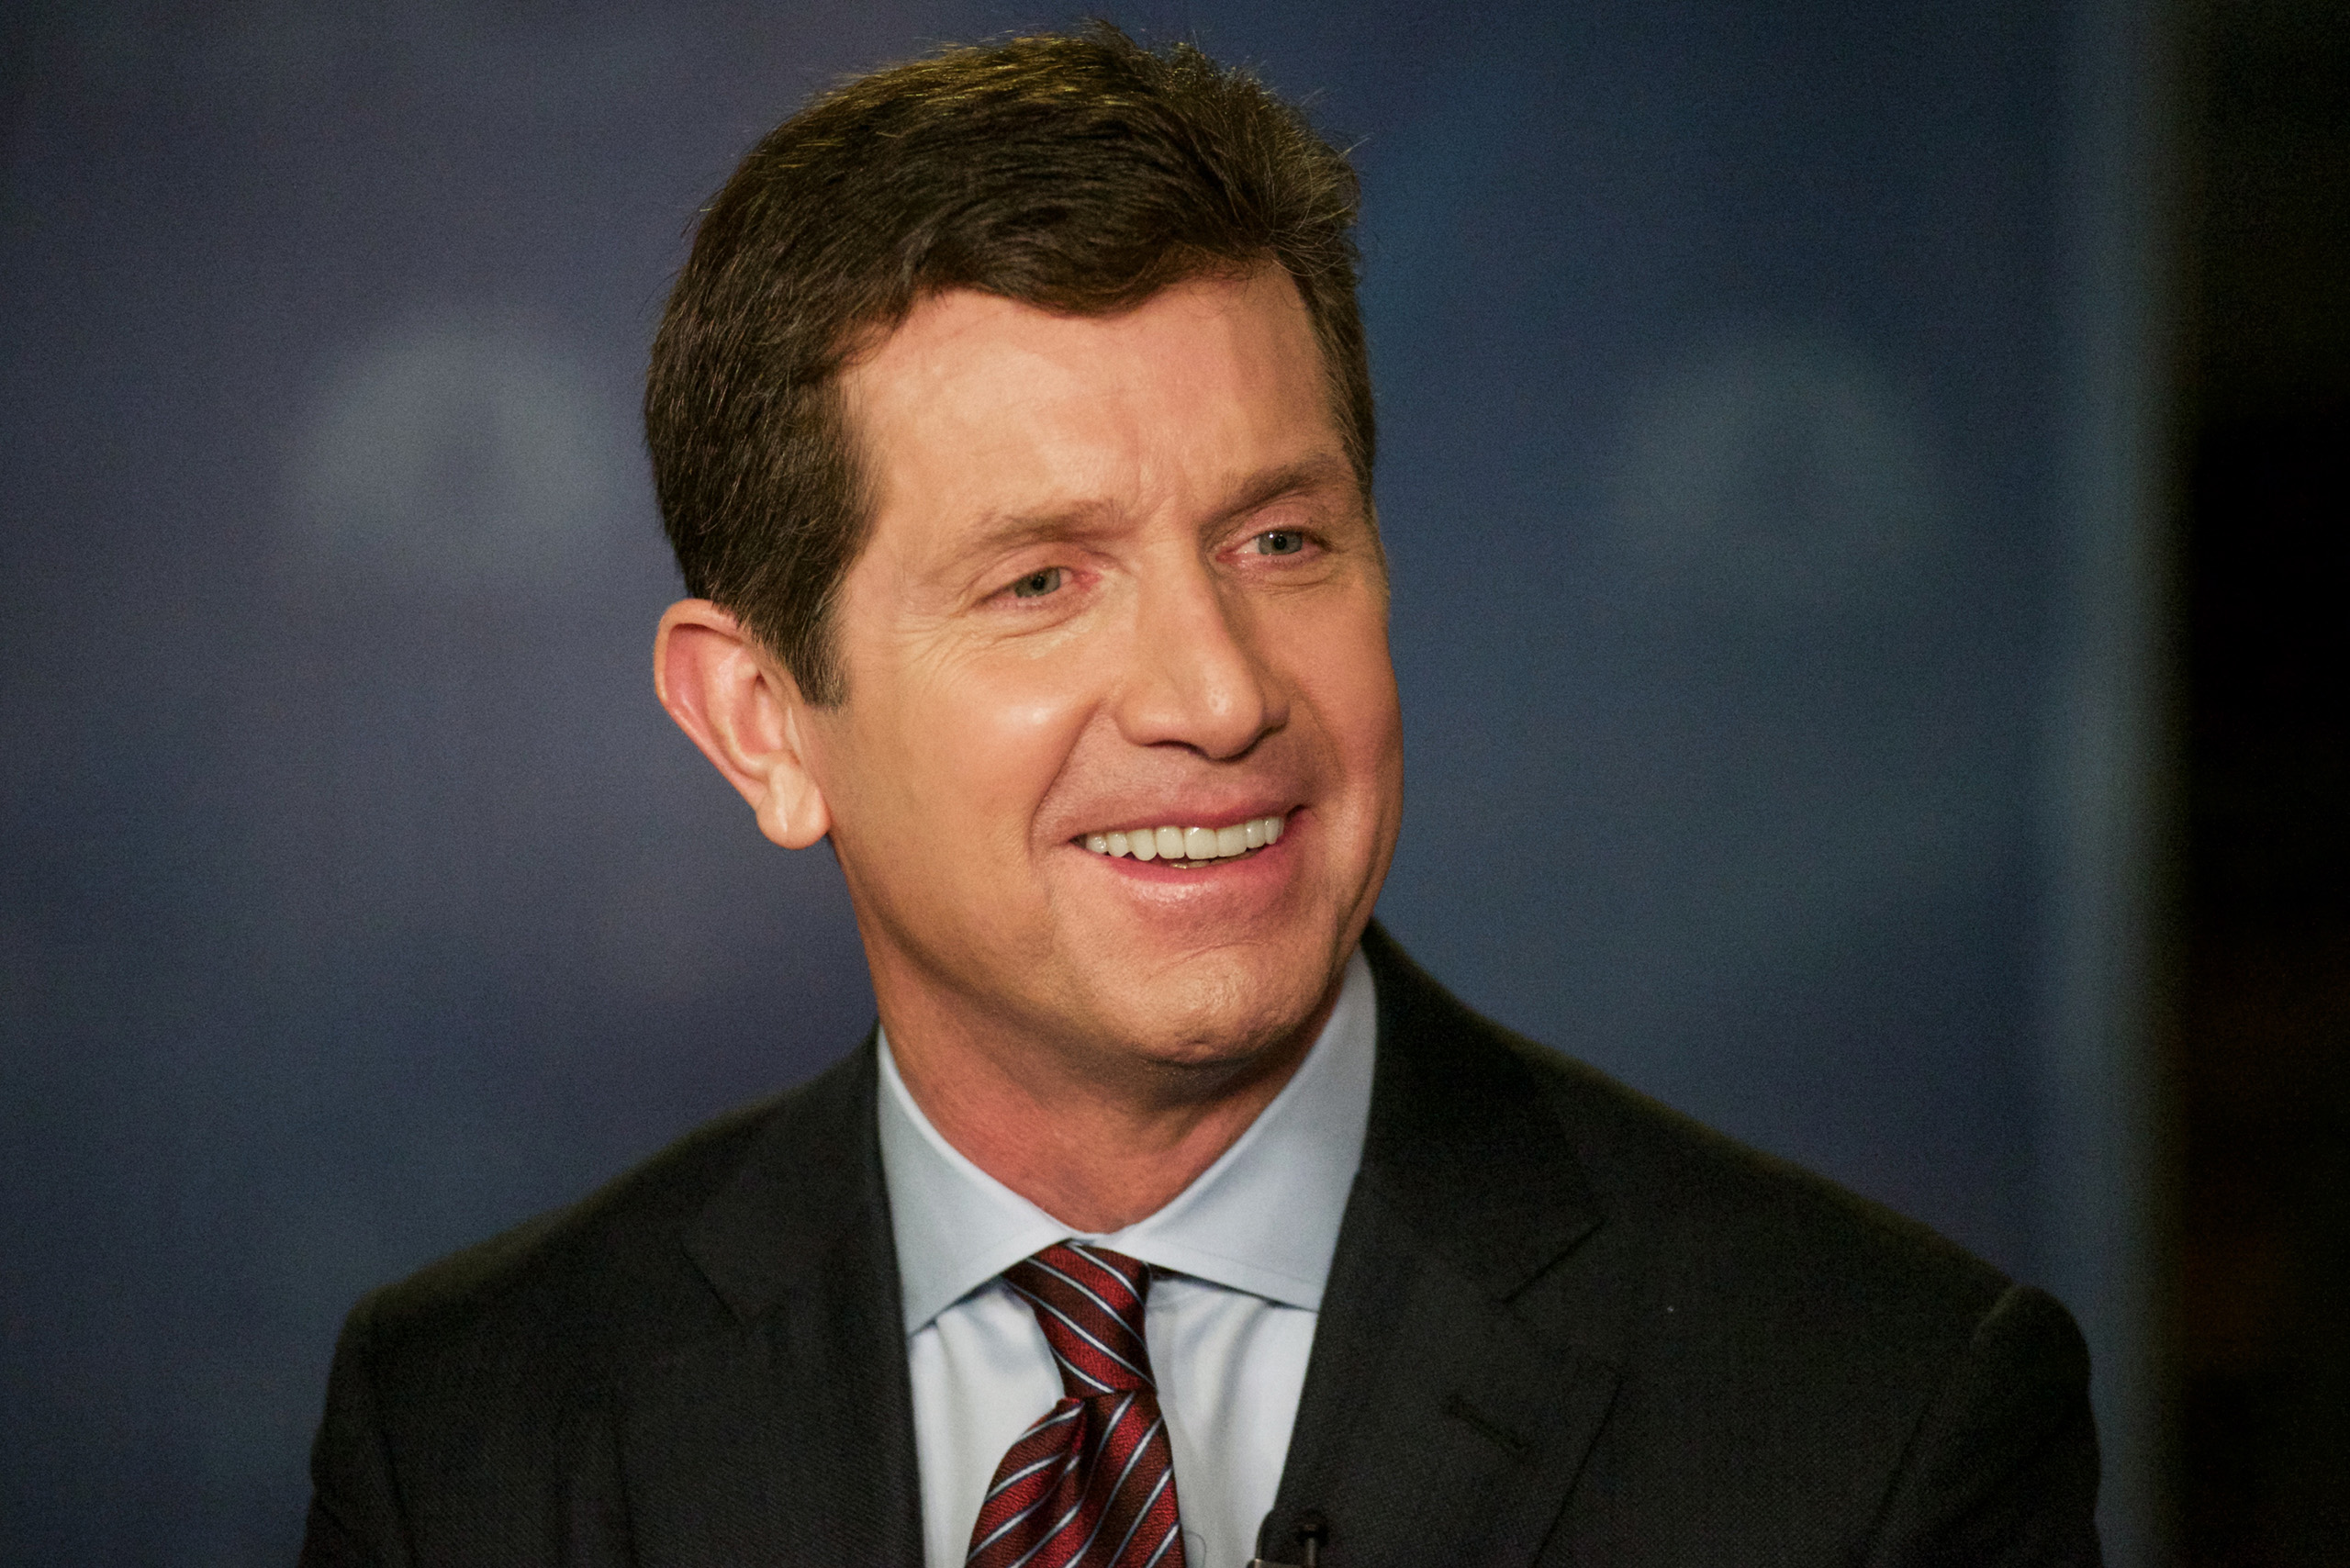 Alex Gorsky, Johnson & Johnson Chairman and CEO, at the 34th annual J.P. Morgan Health Care Conference on Jan. 11, 2016 in San Francisco.